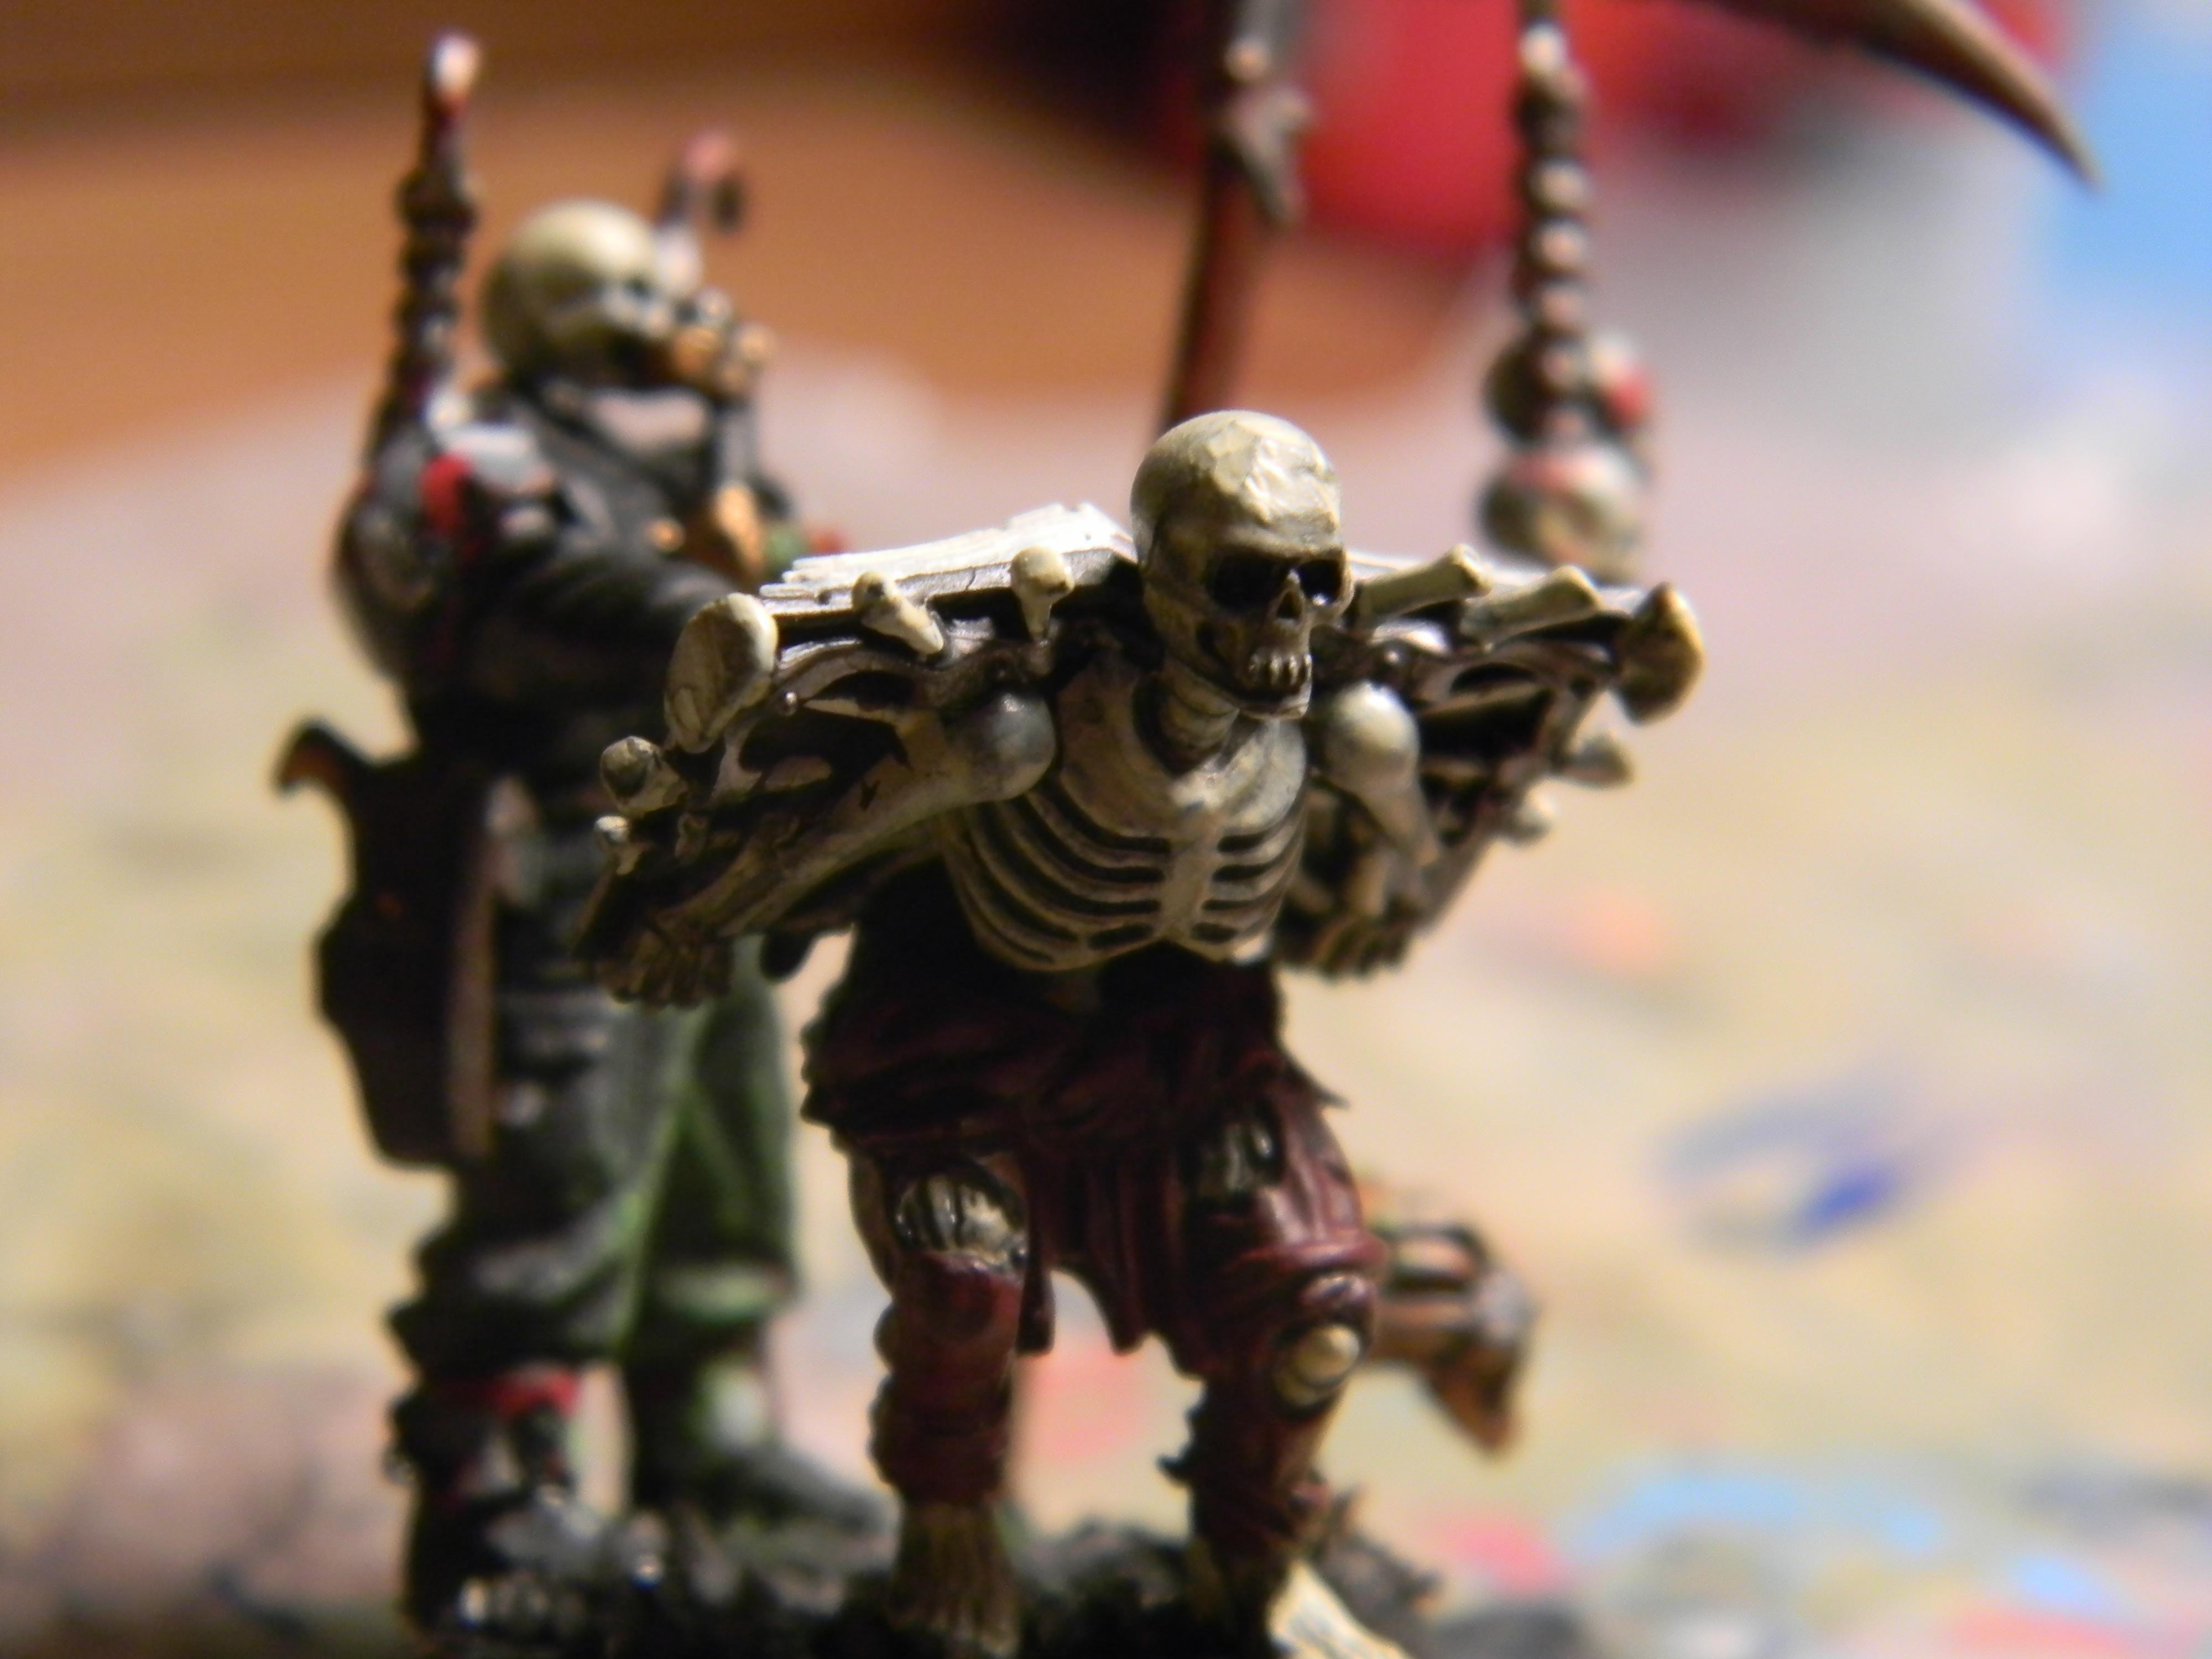 Awesome, Book, Caster, Conversion, Imperial Guard, Scribe, Servant, Skeletons, Undead, Vampire Counts, Vox